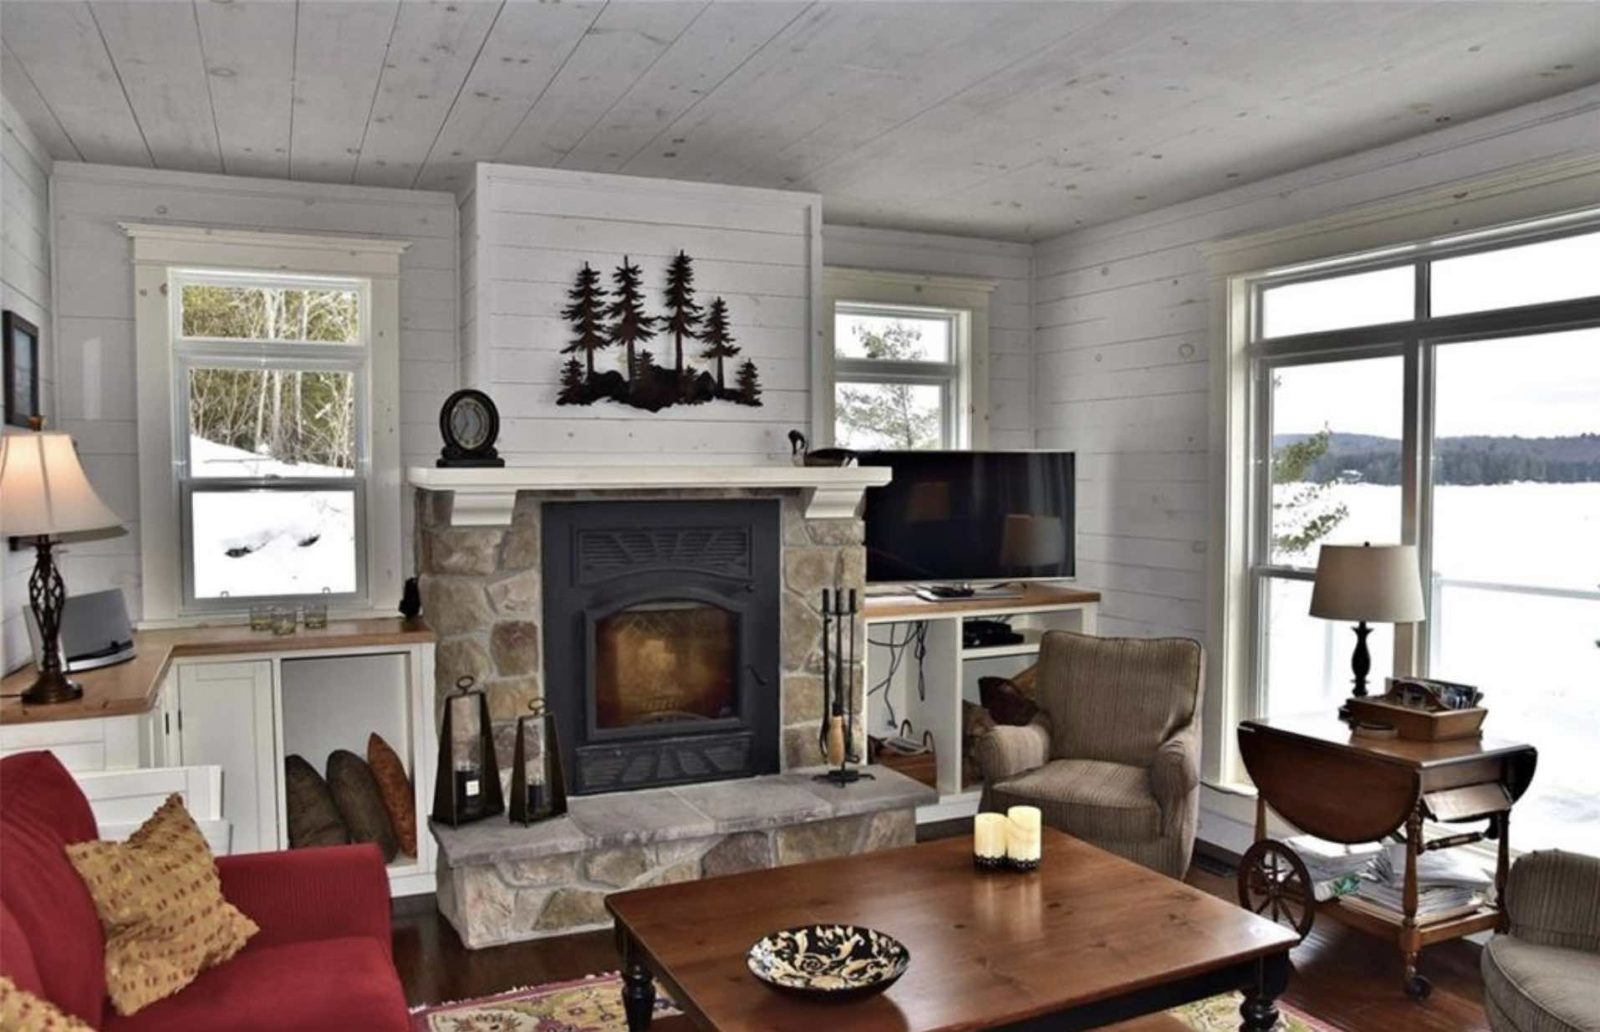 Kennisis Lake cottage interior showing living room and fireplace